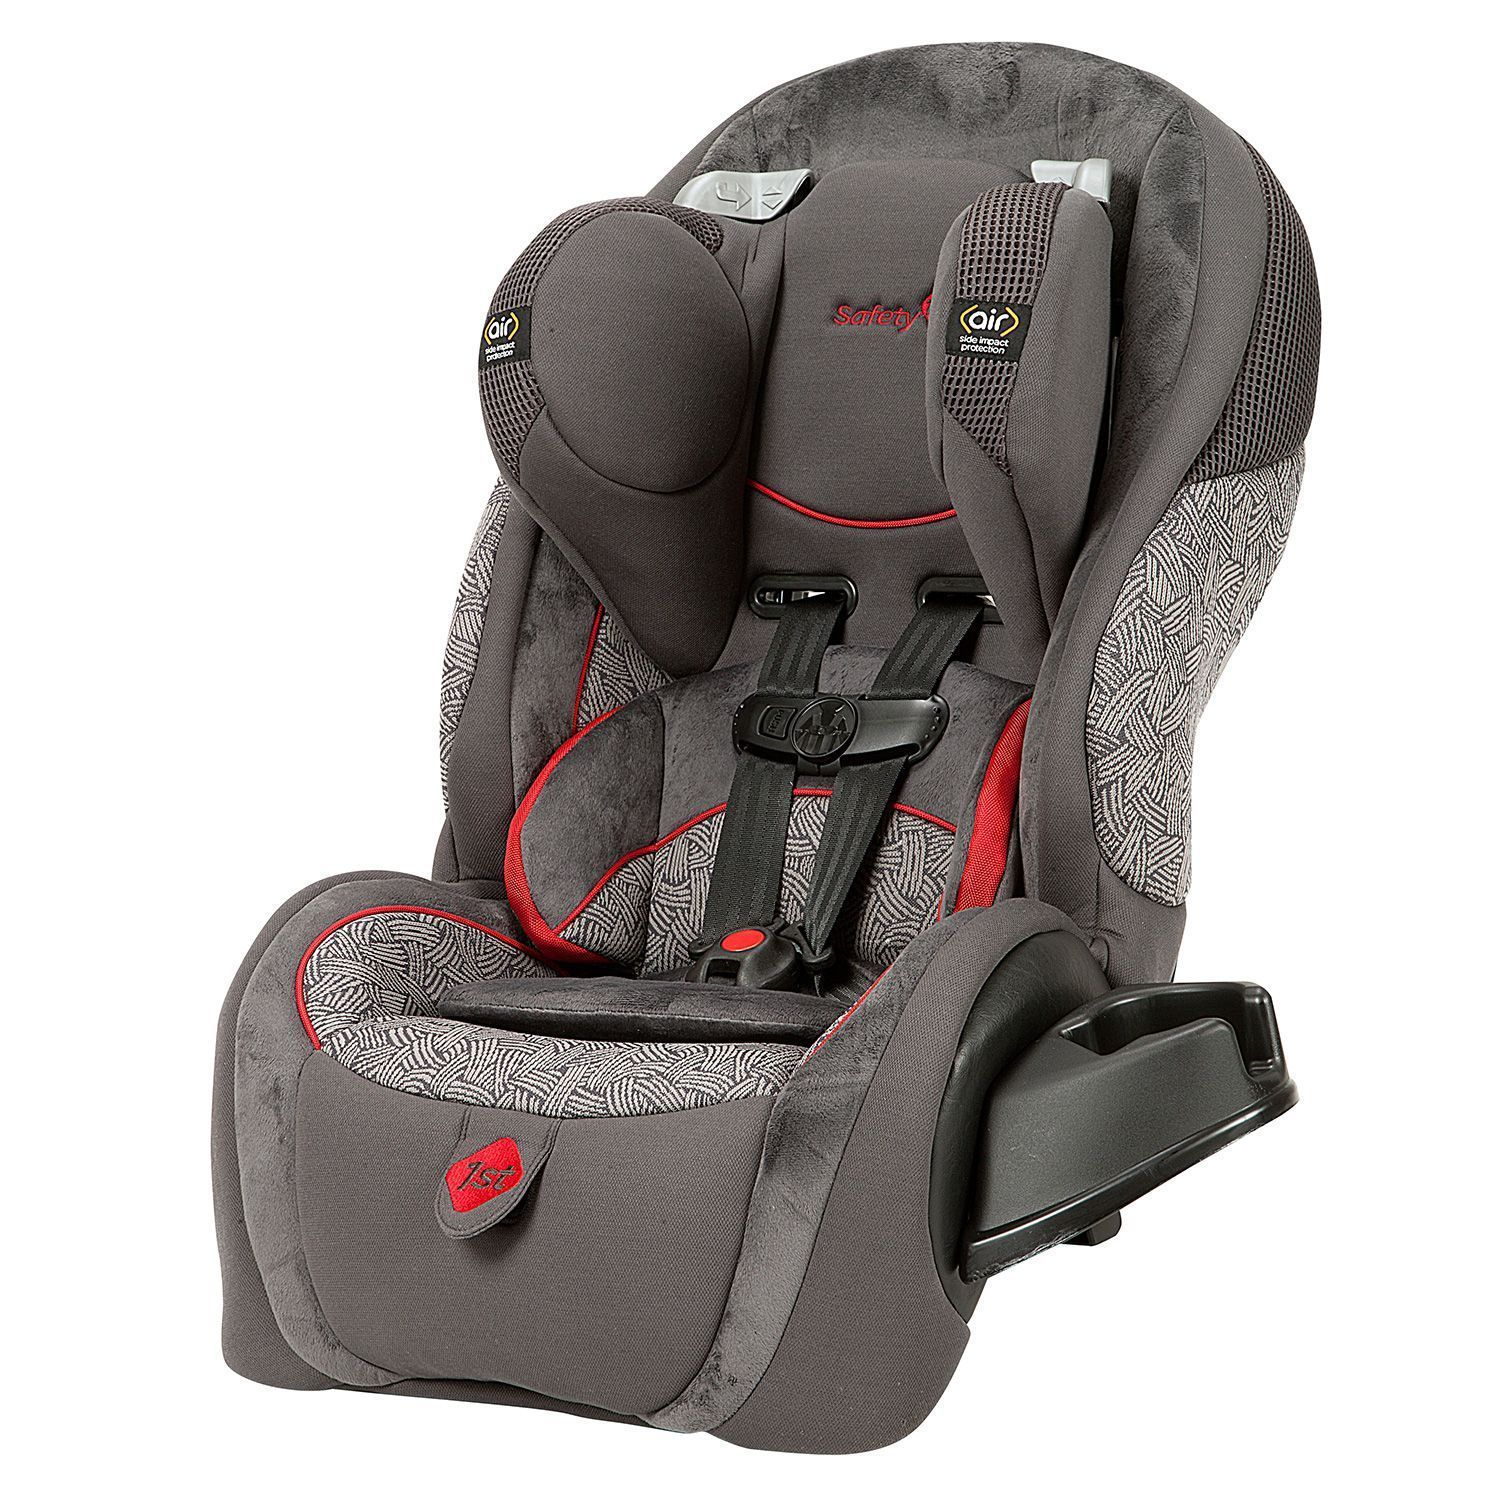 Baby Car Seat Safety Law Convertible Infant Toddler Buster